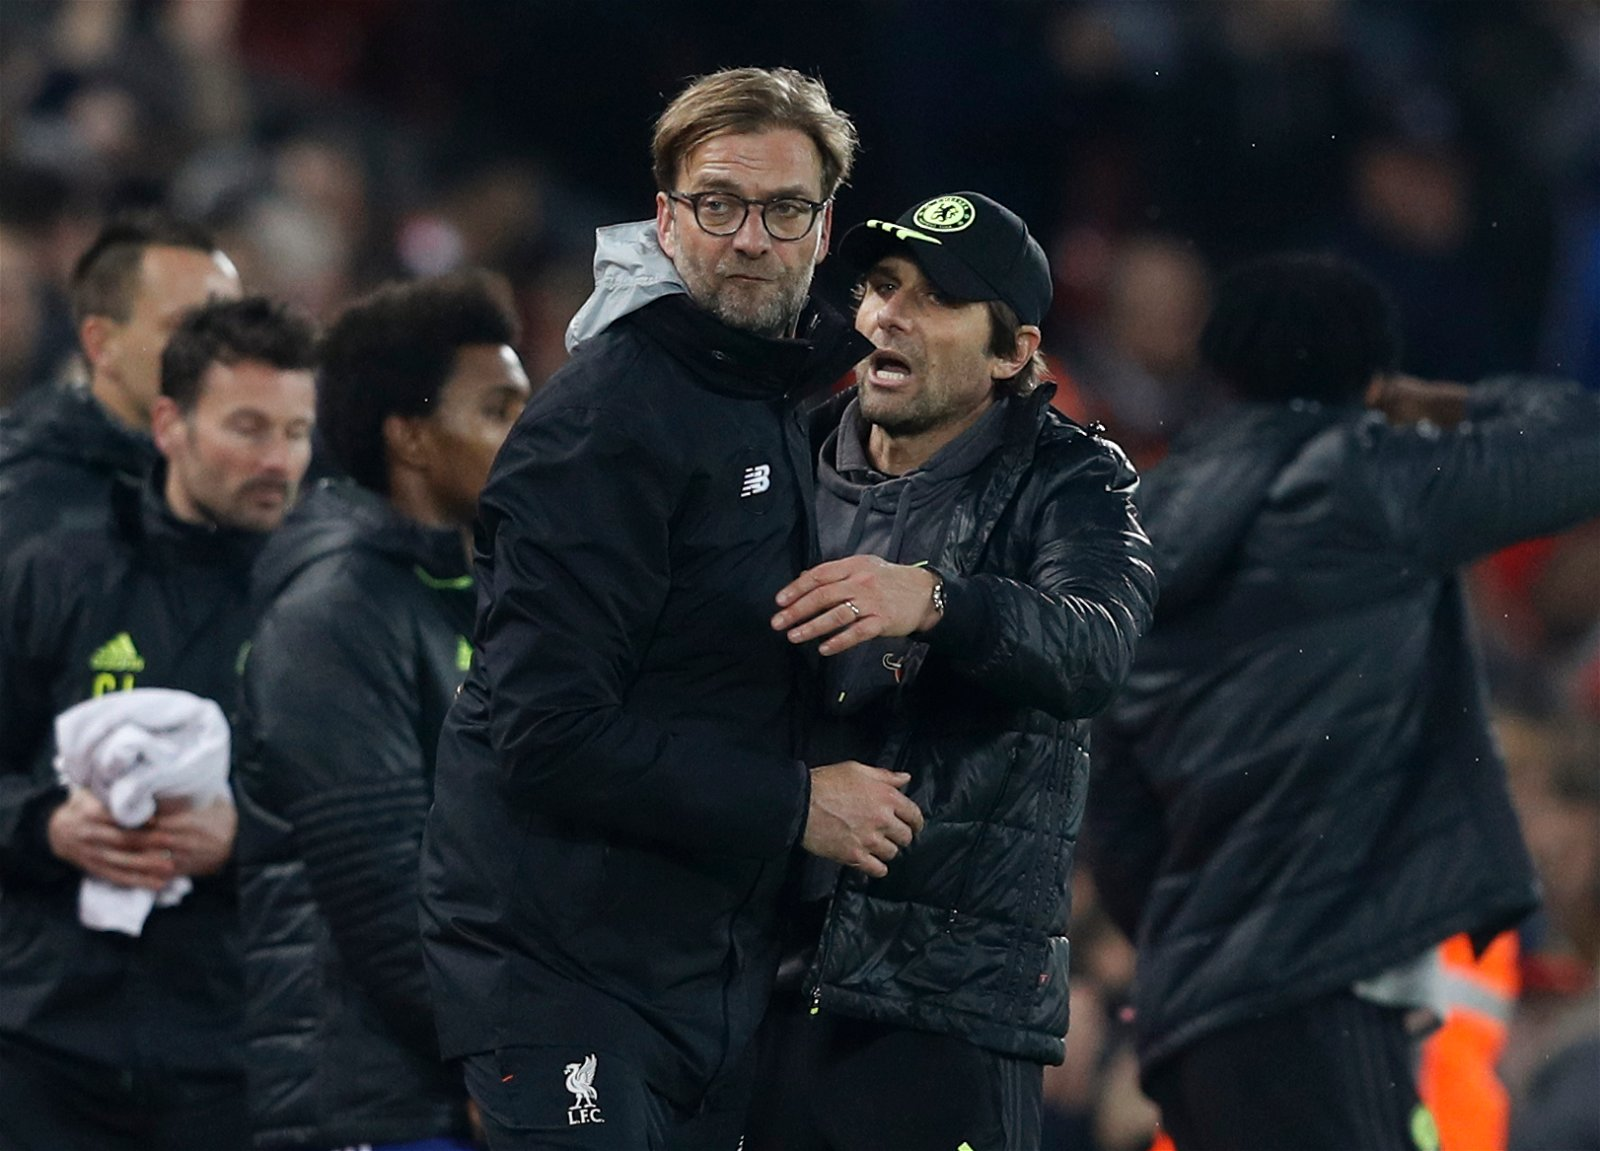 Chelsea manager Antonio Conte and Liverpool manager Juergen Klopp after the game